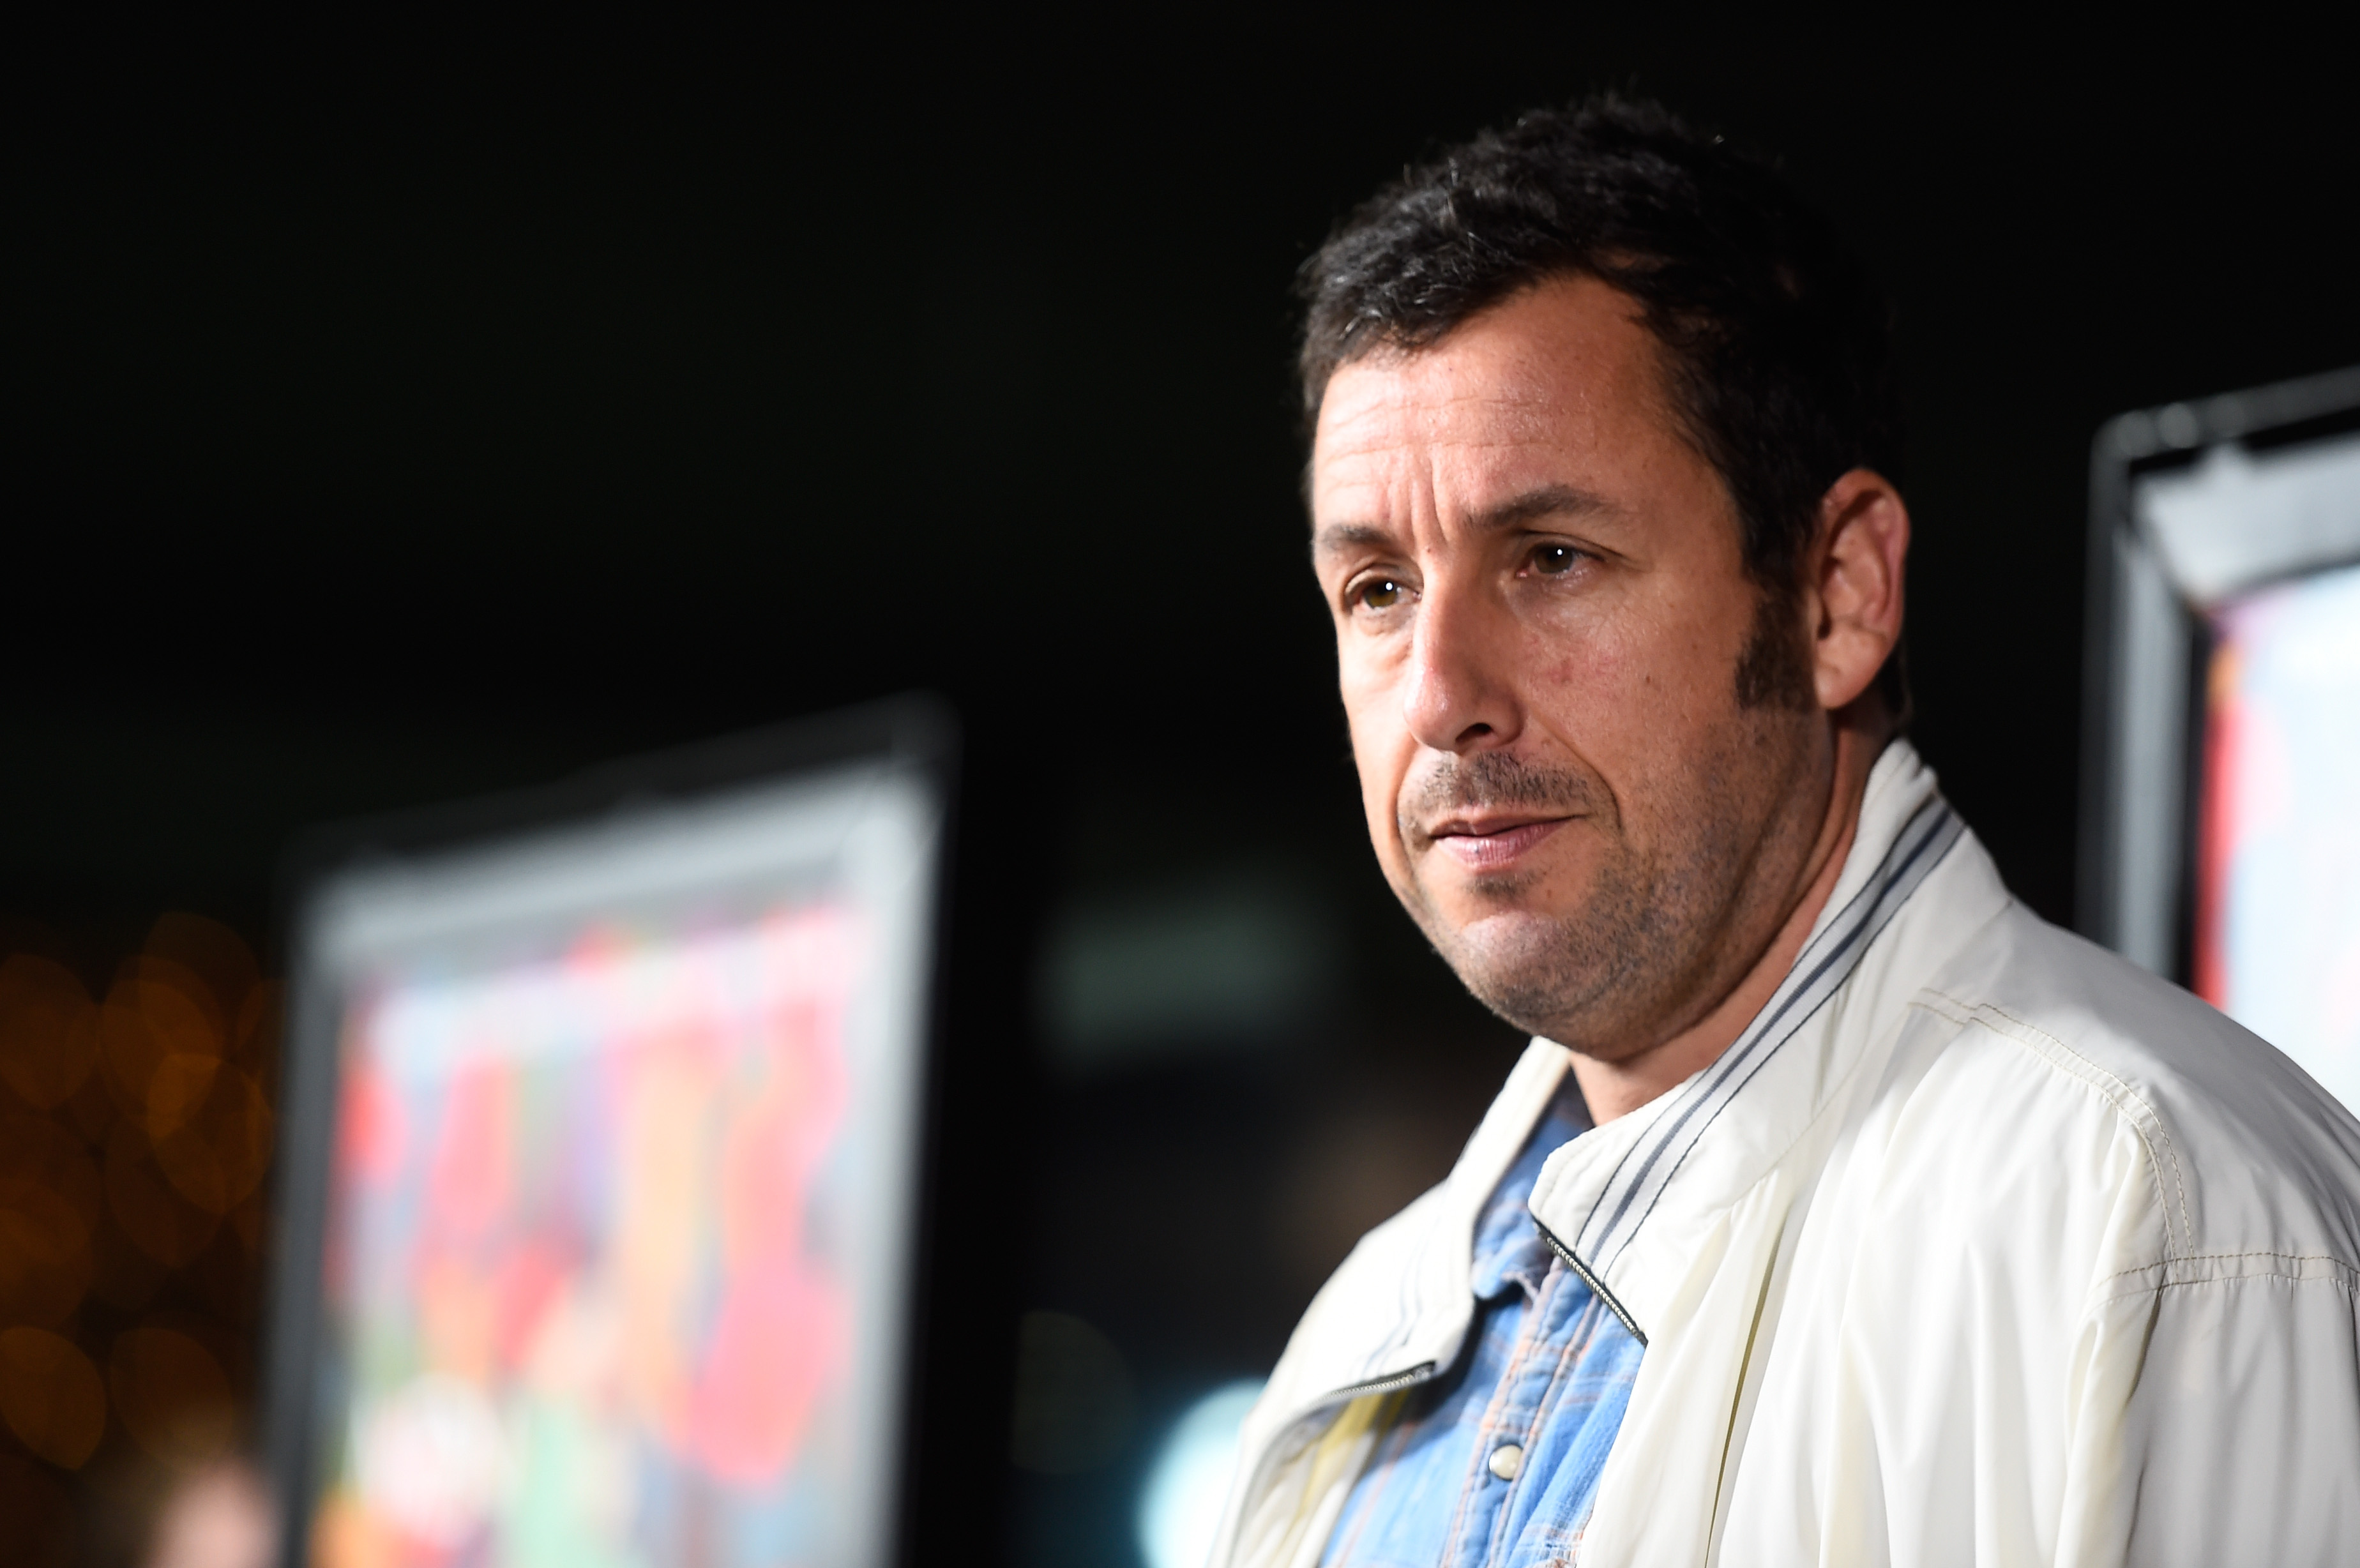 Adam Sandler teams up with Netflix for four movies